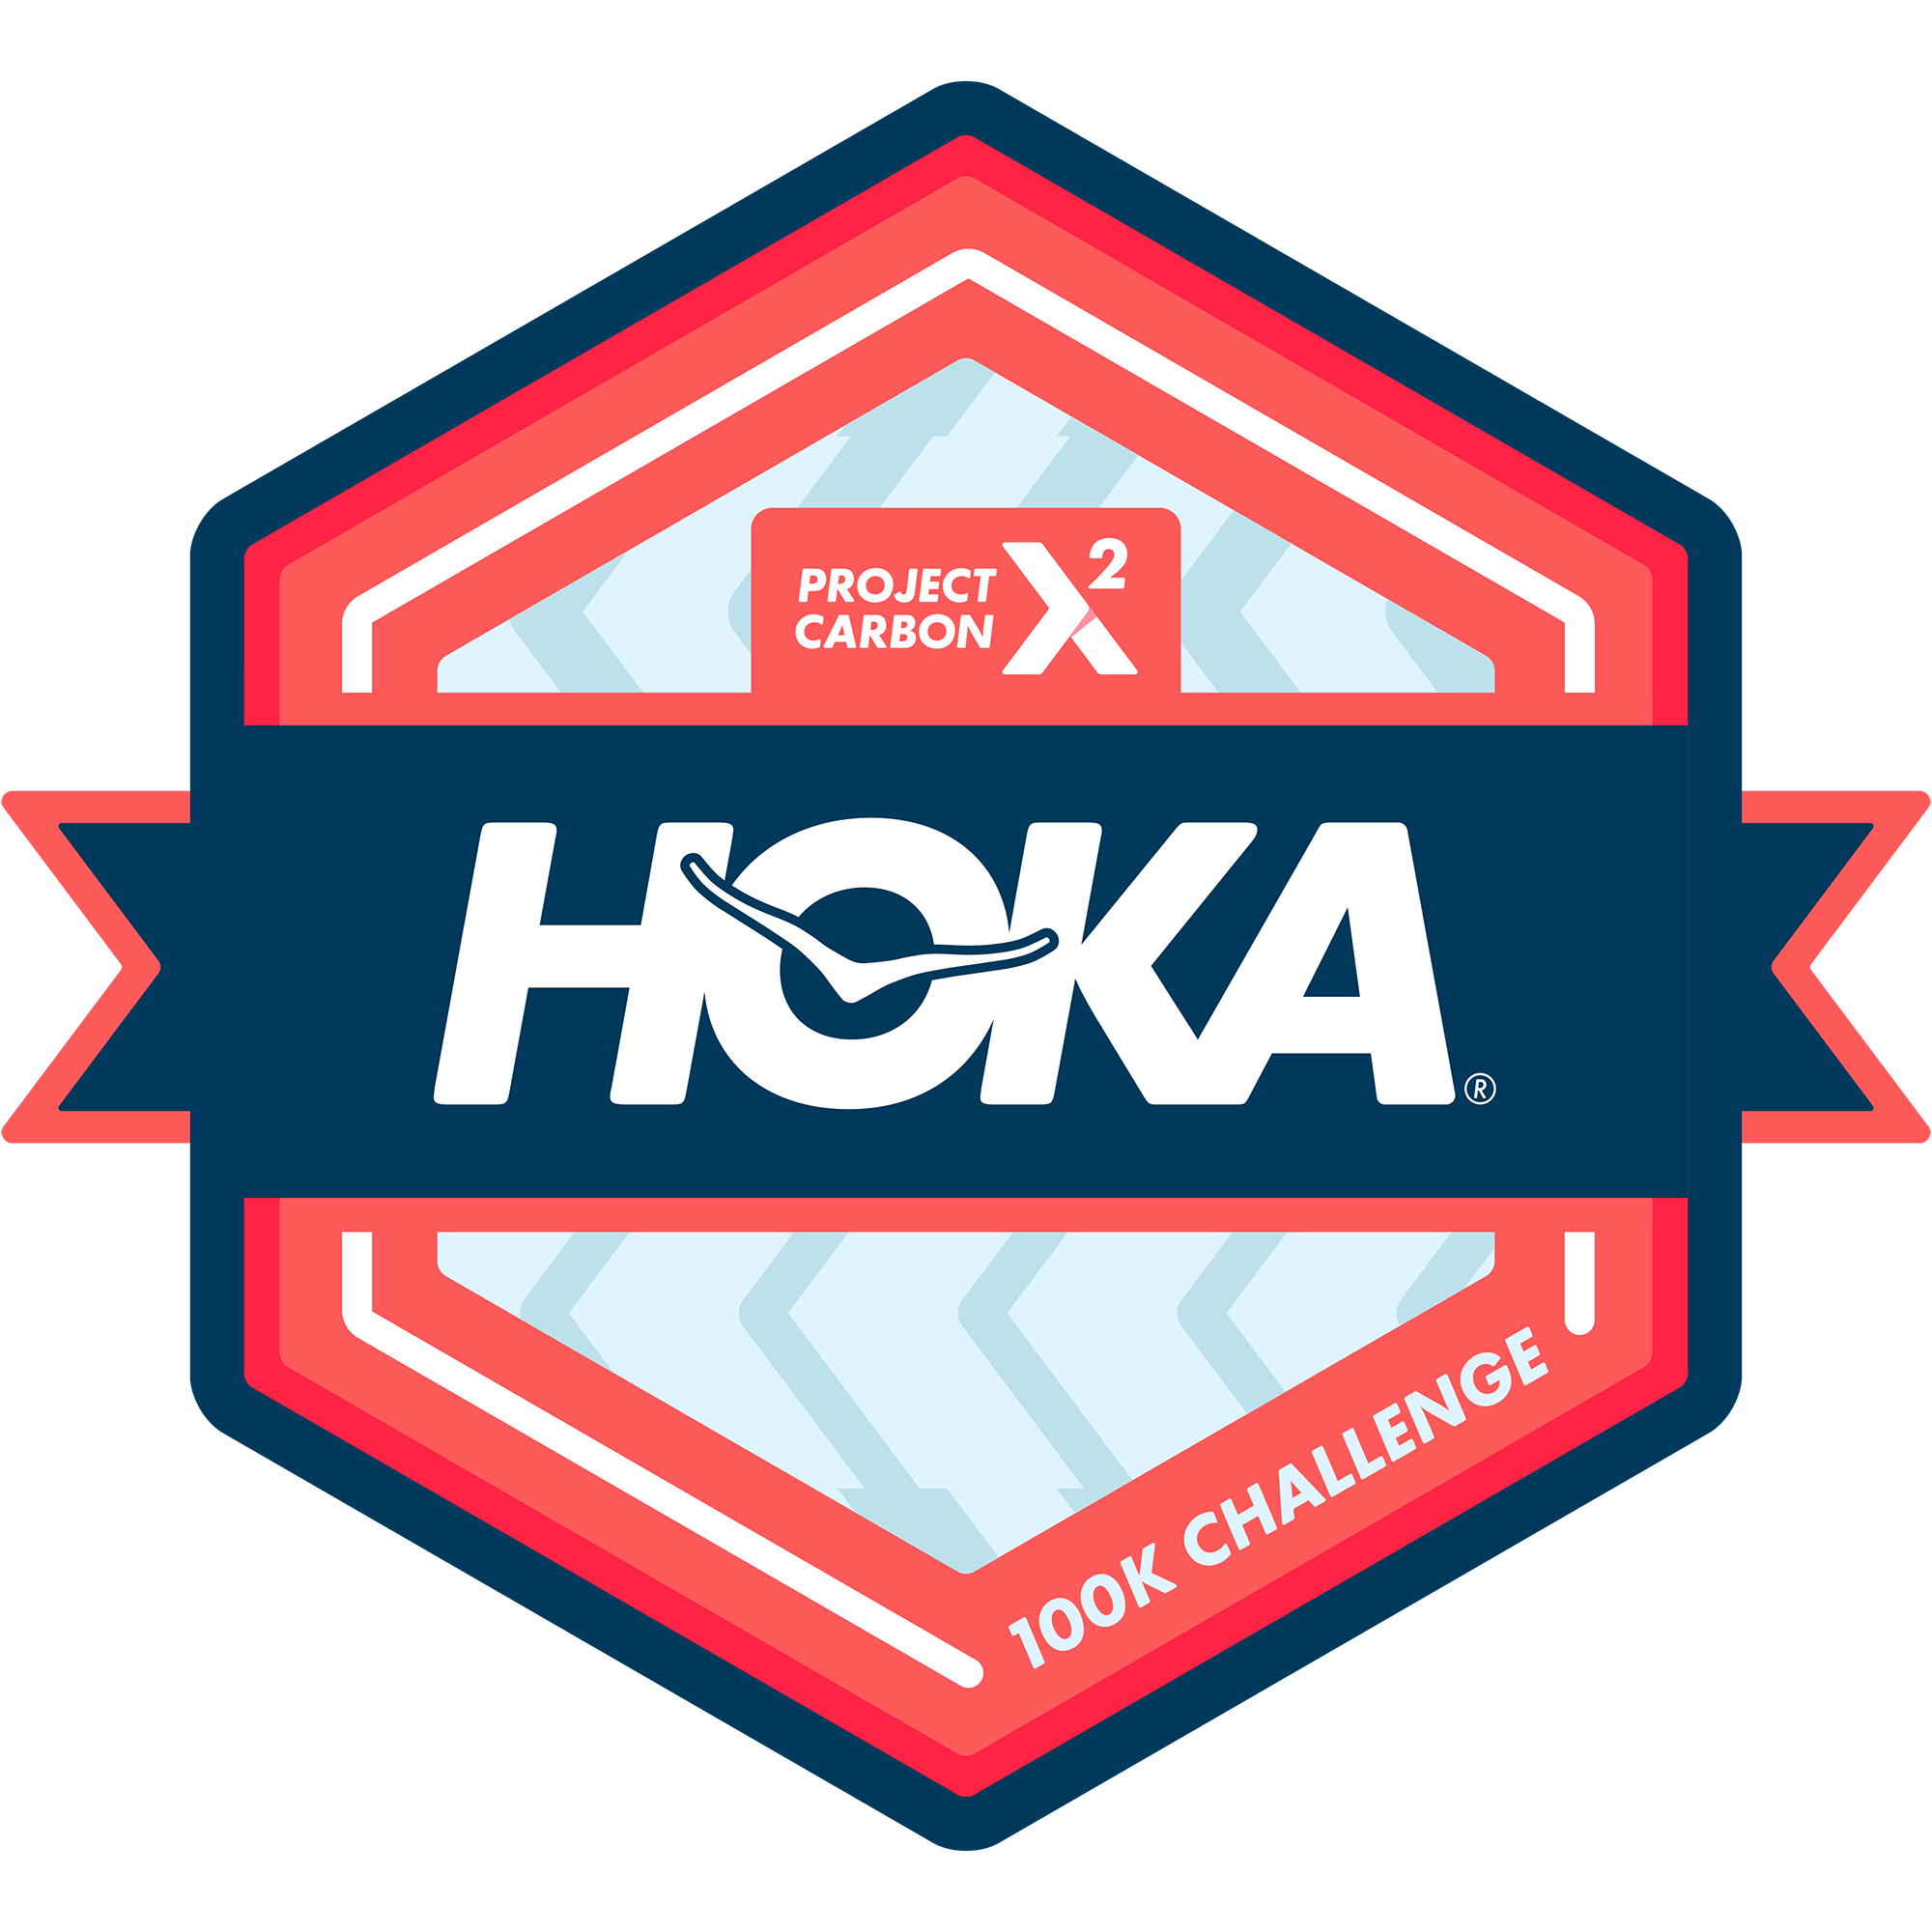 HOKA® Project Carbon X 2 100K Challenge